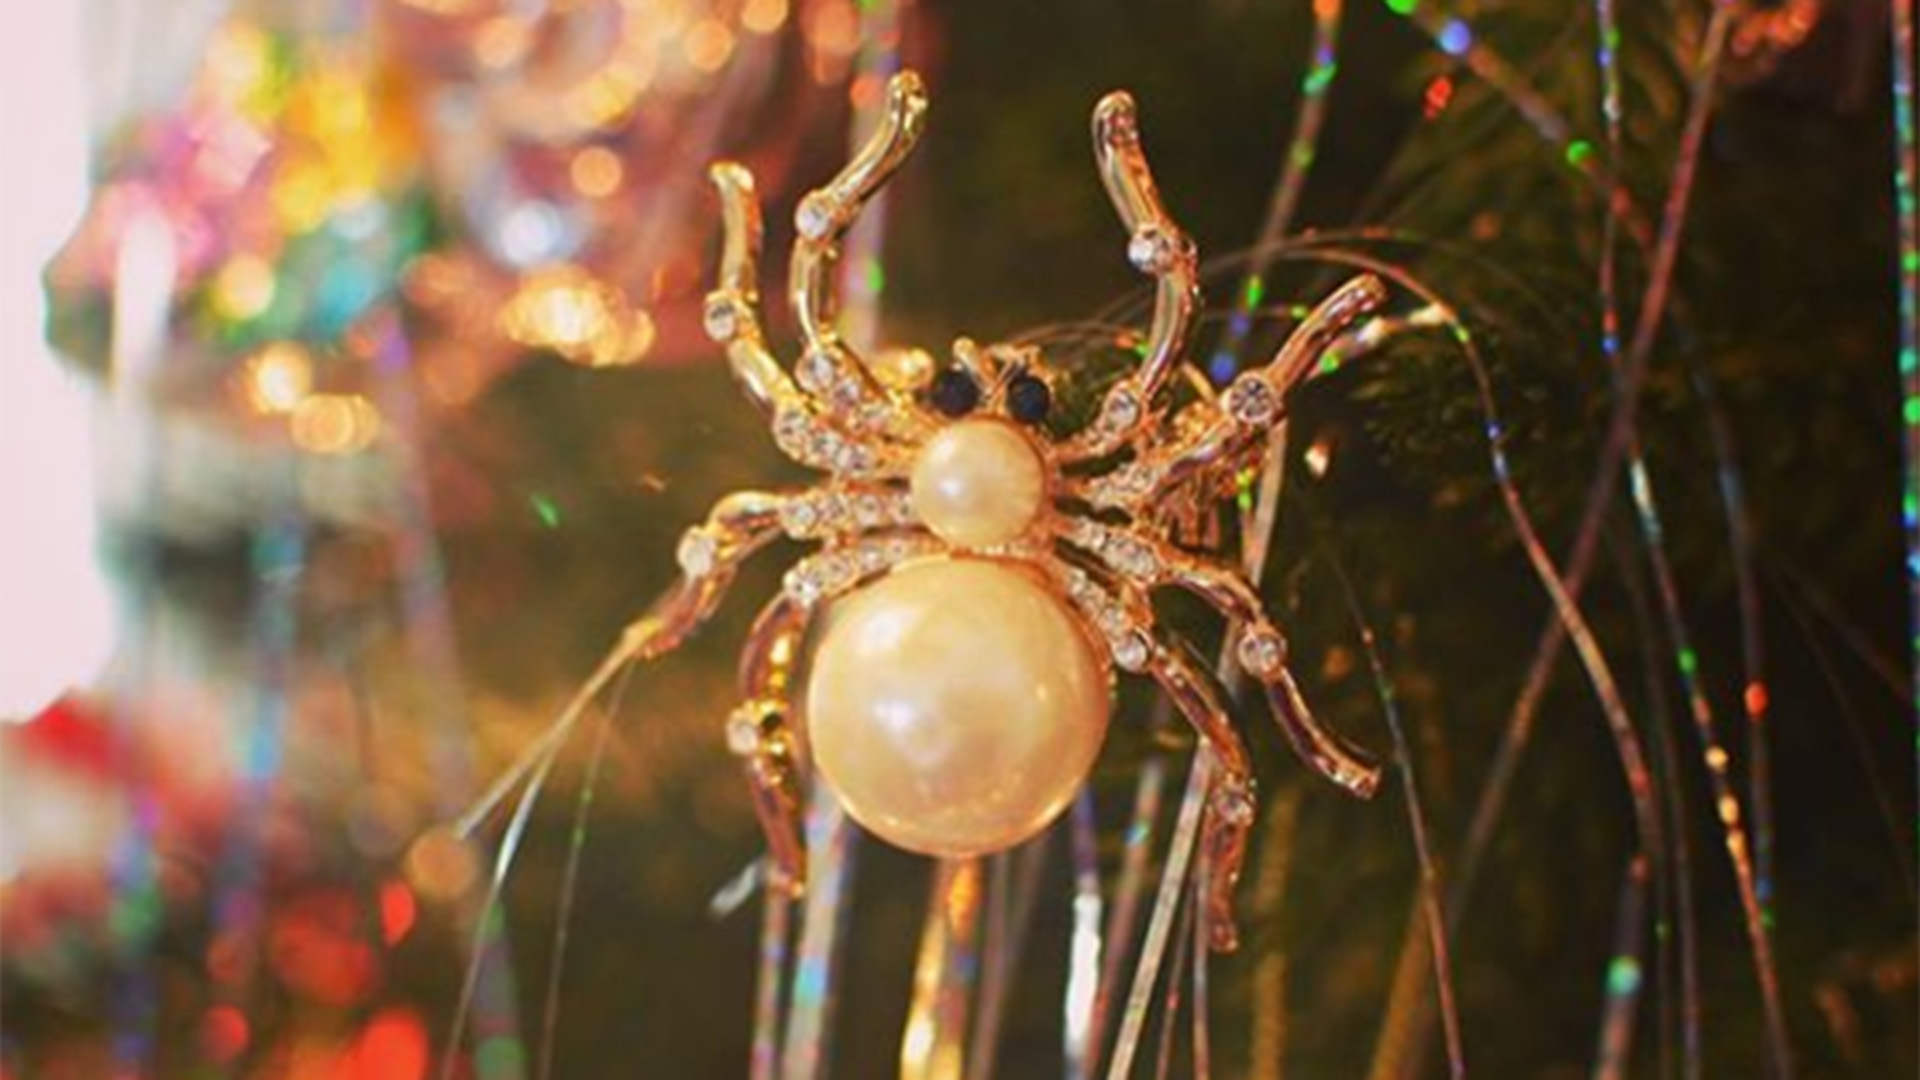 spider ornaments on christmas trees symbolize good luck - The Christmas Spider